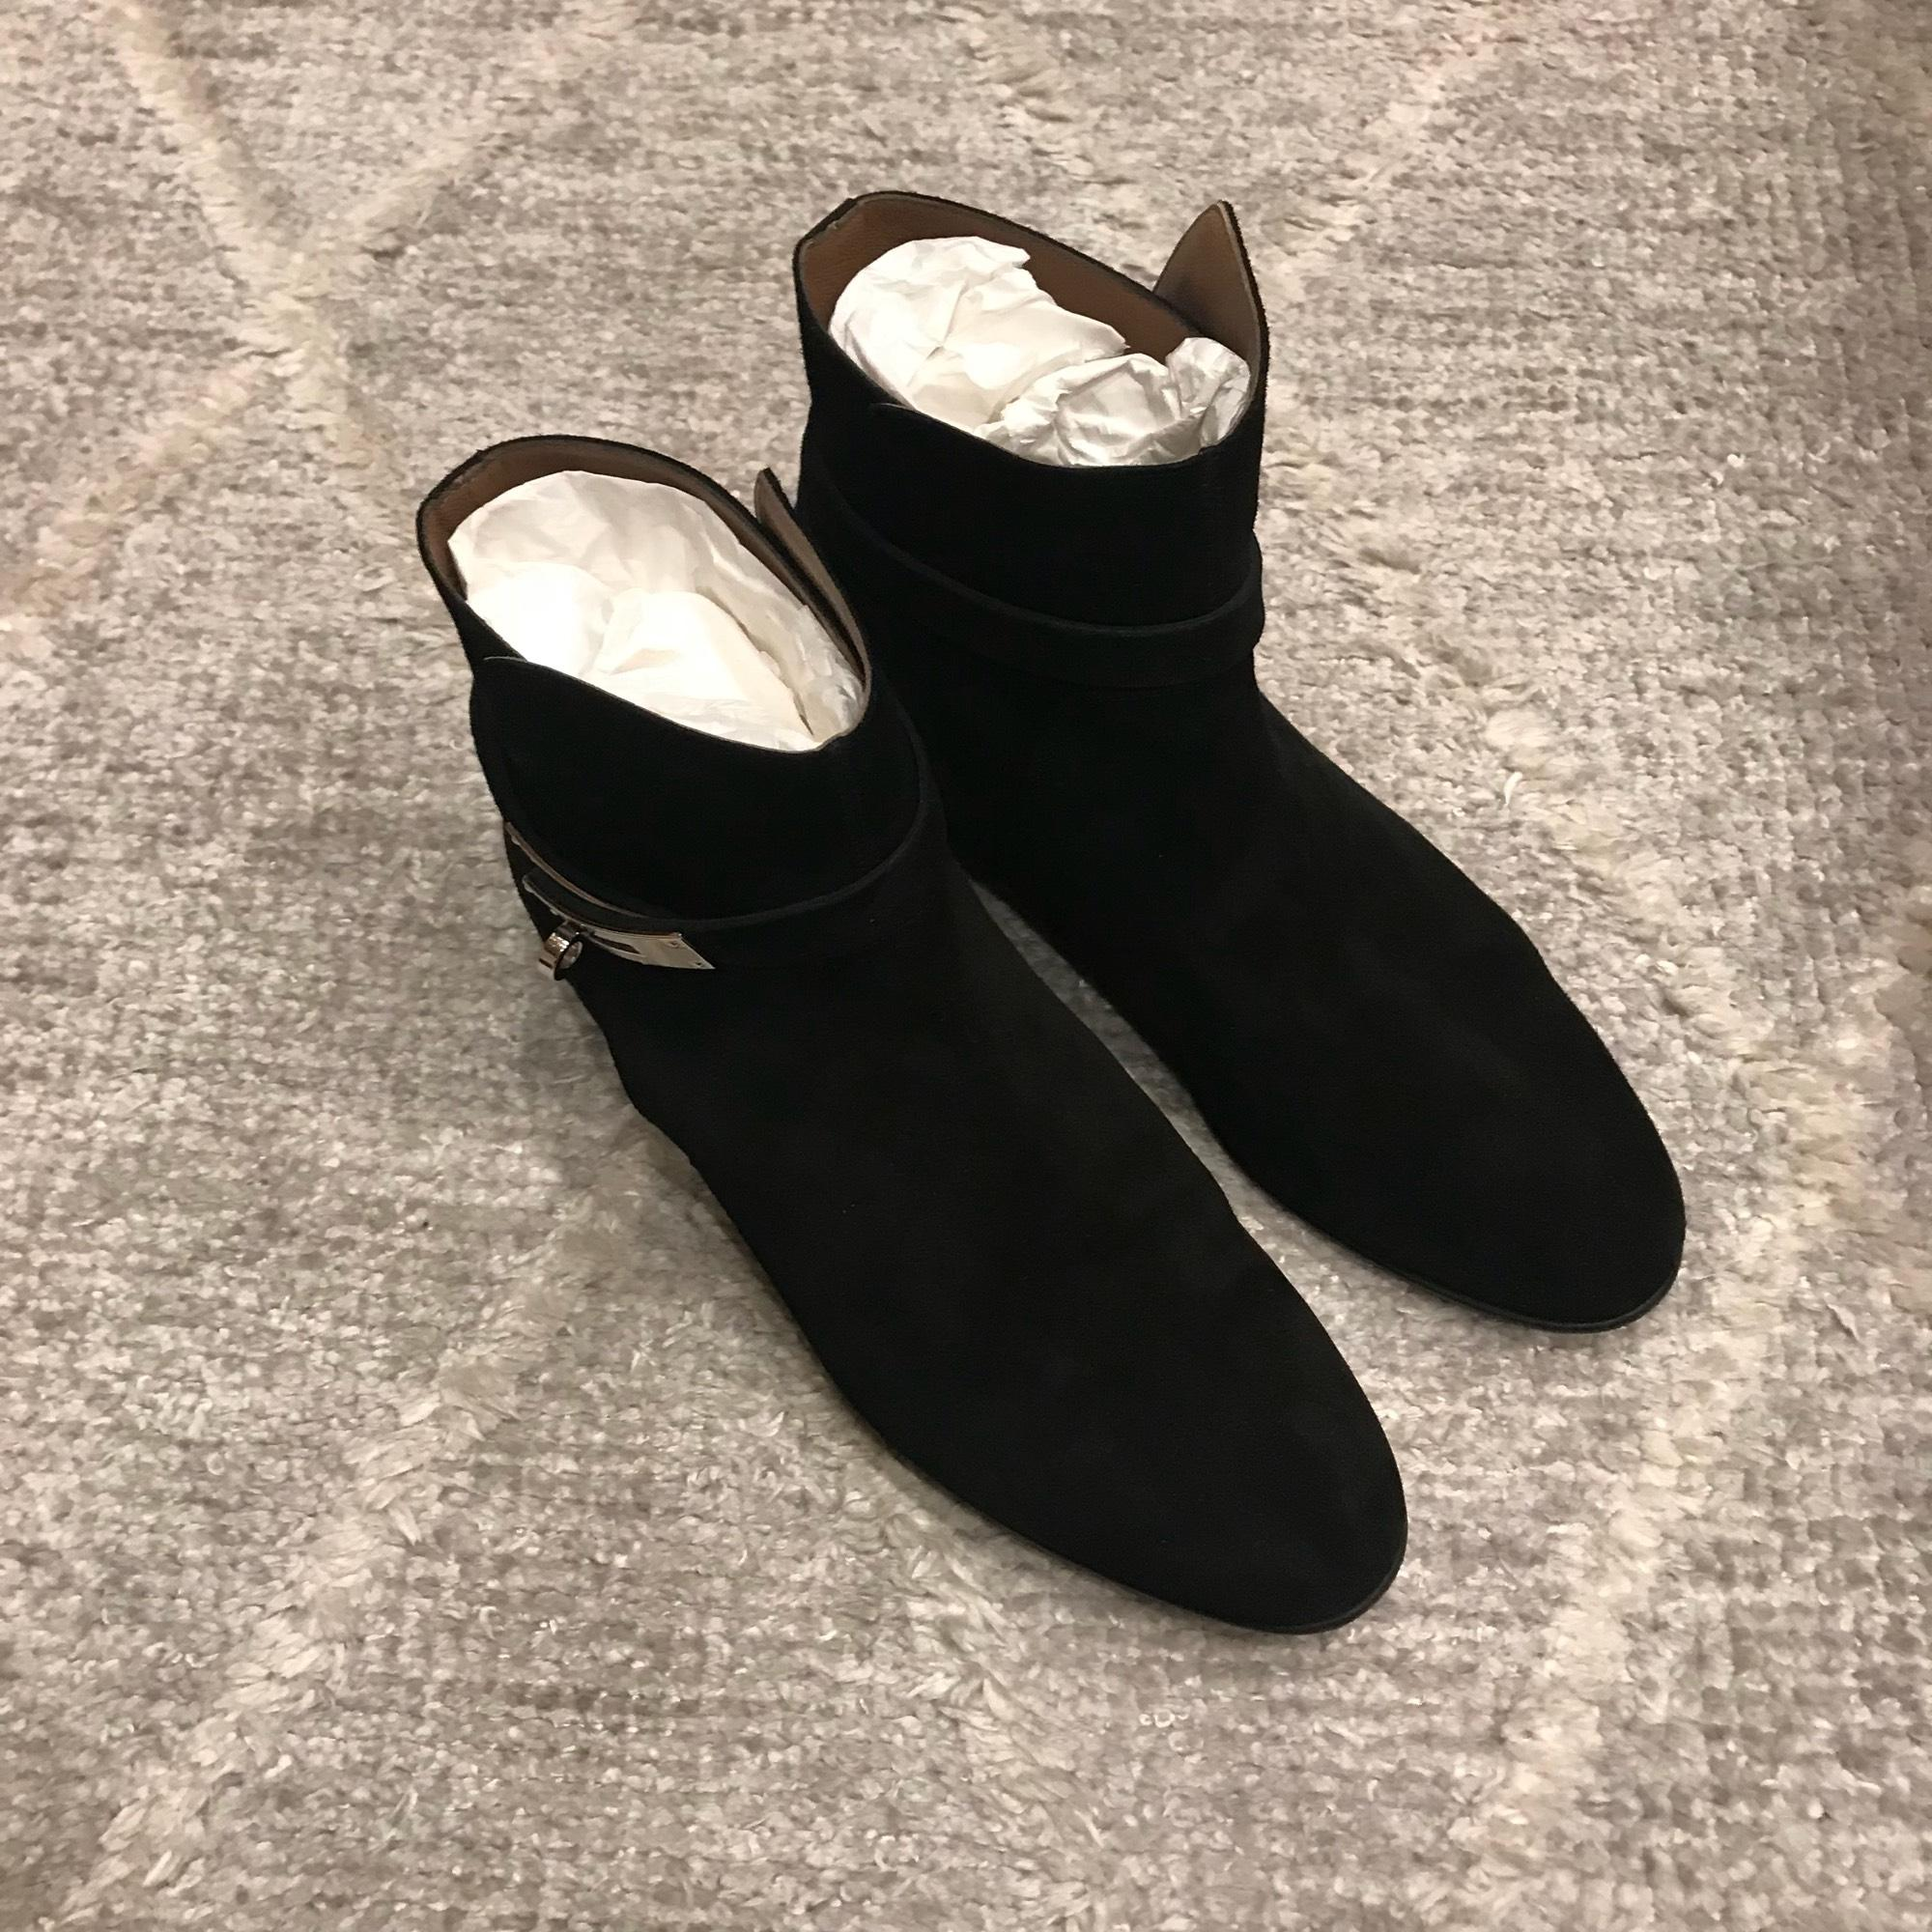 100% authentic 15c90 22e69 Hermès Black Neo Suede Boots/Booties Size EU 40.5 (Approx ...